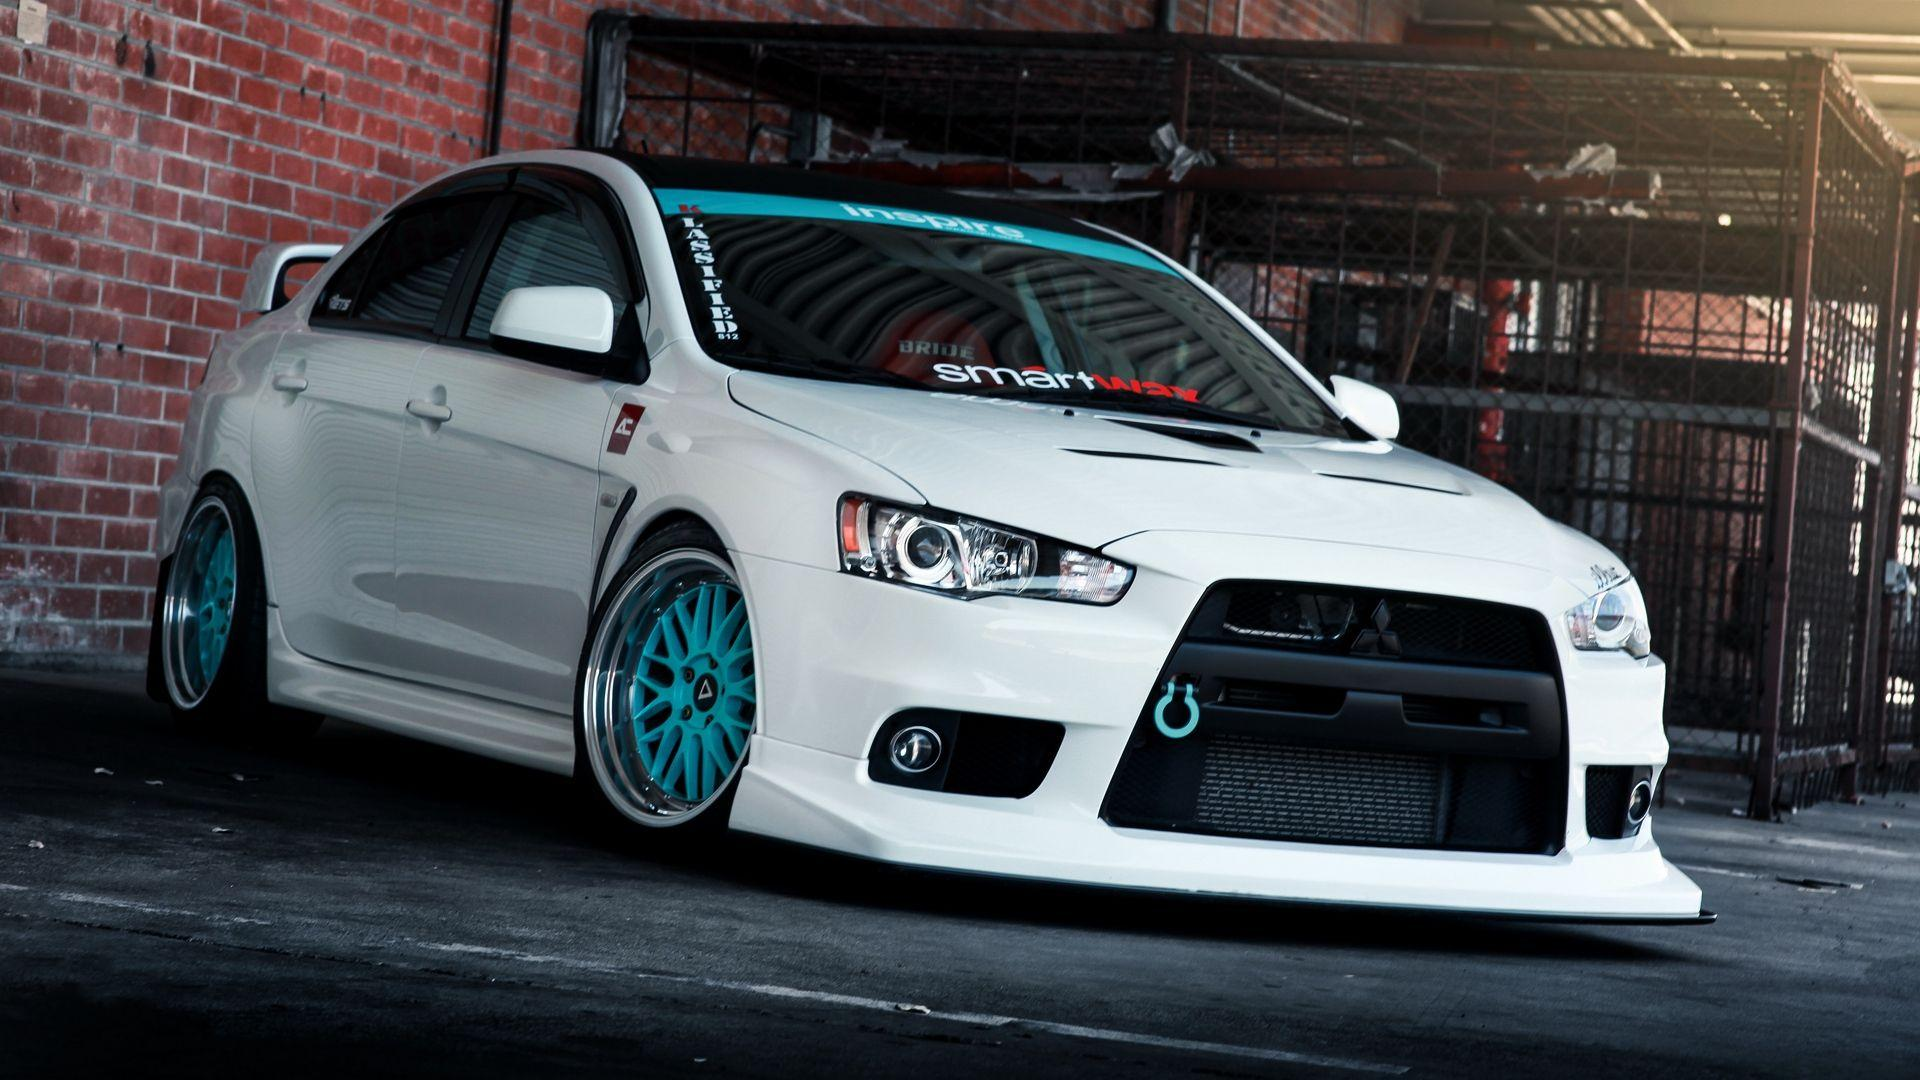 Download wallpapers 1920x1080 mitsubishi lancer, evo x, tune full hd